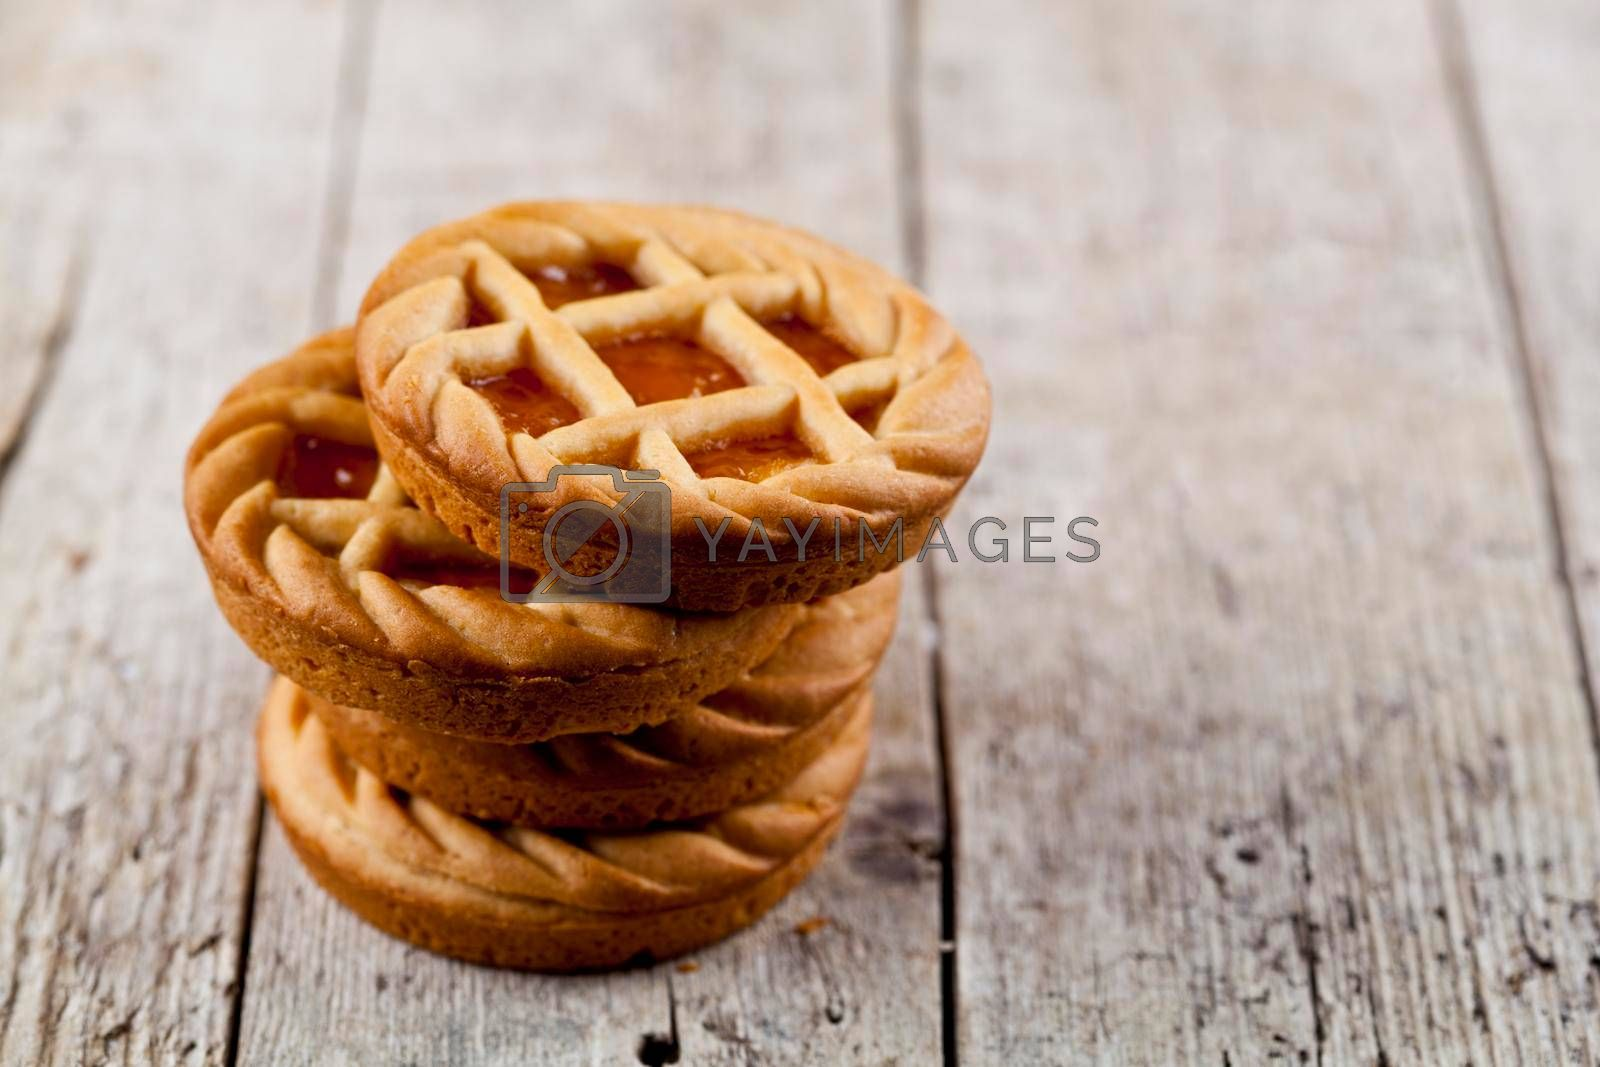 Fresh baked tarts with marmalade or apricot jam filling on on rustic wooden table background. With copy space.